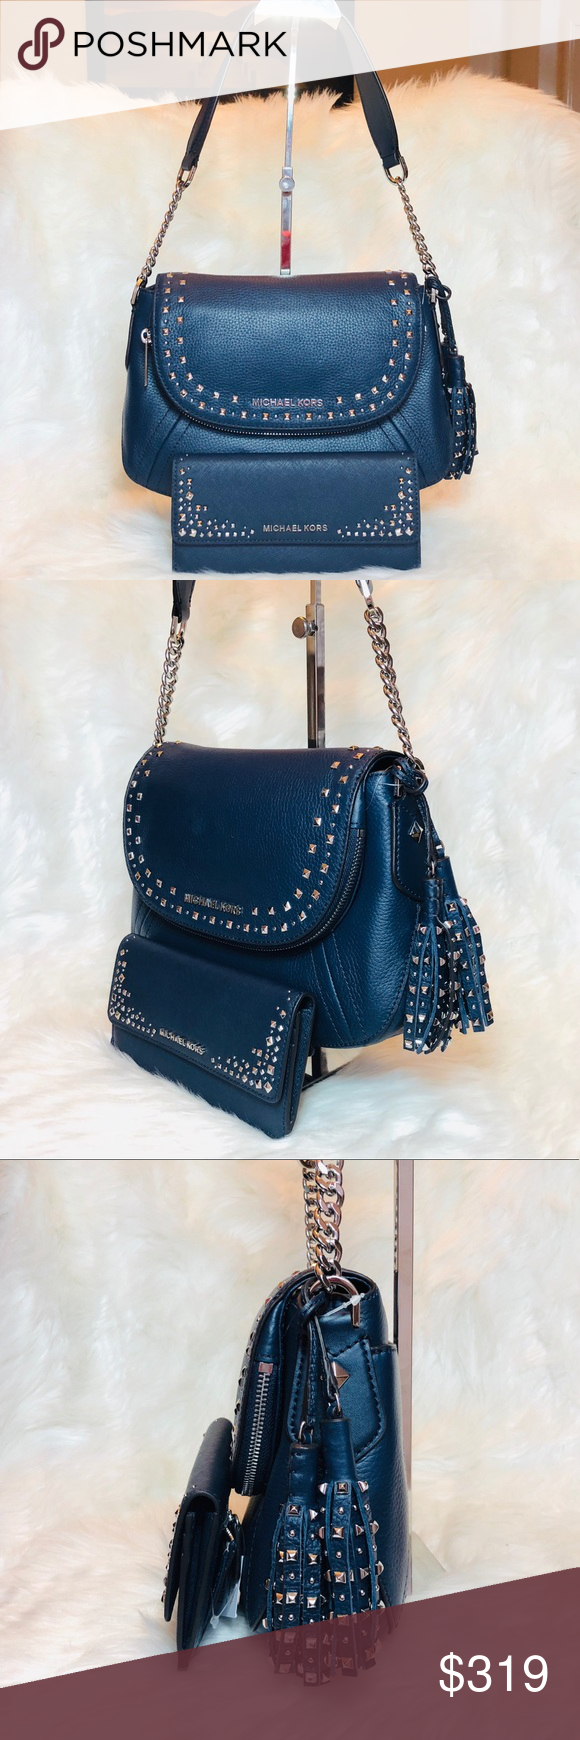 96b9f5ab85ca Michael Kors Studded Aria Shoulder bag and Wallet Michael Kors Aria  Convertible Stud Tassel Medium Navy Blue Leather Rare Shoulder Bag and  Matching Wallet ...